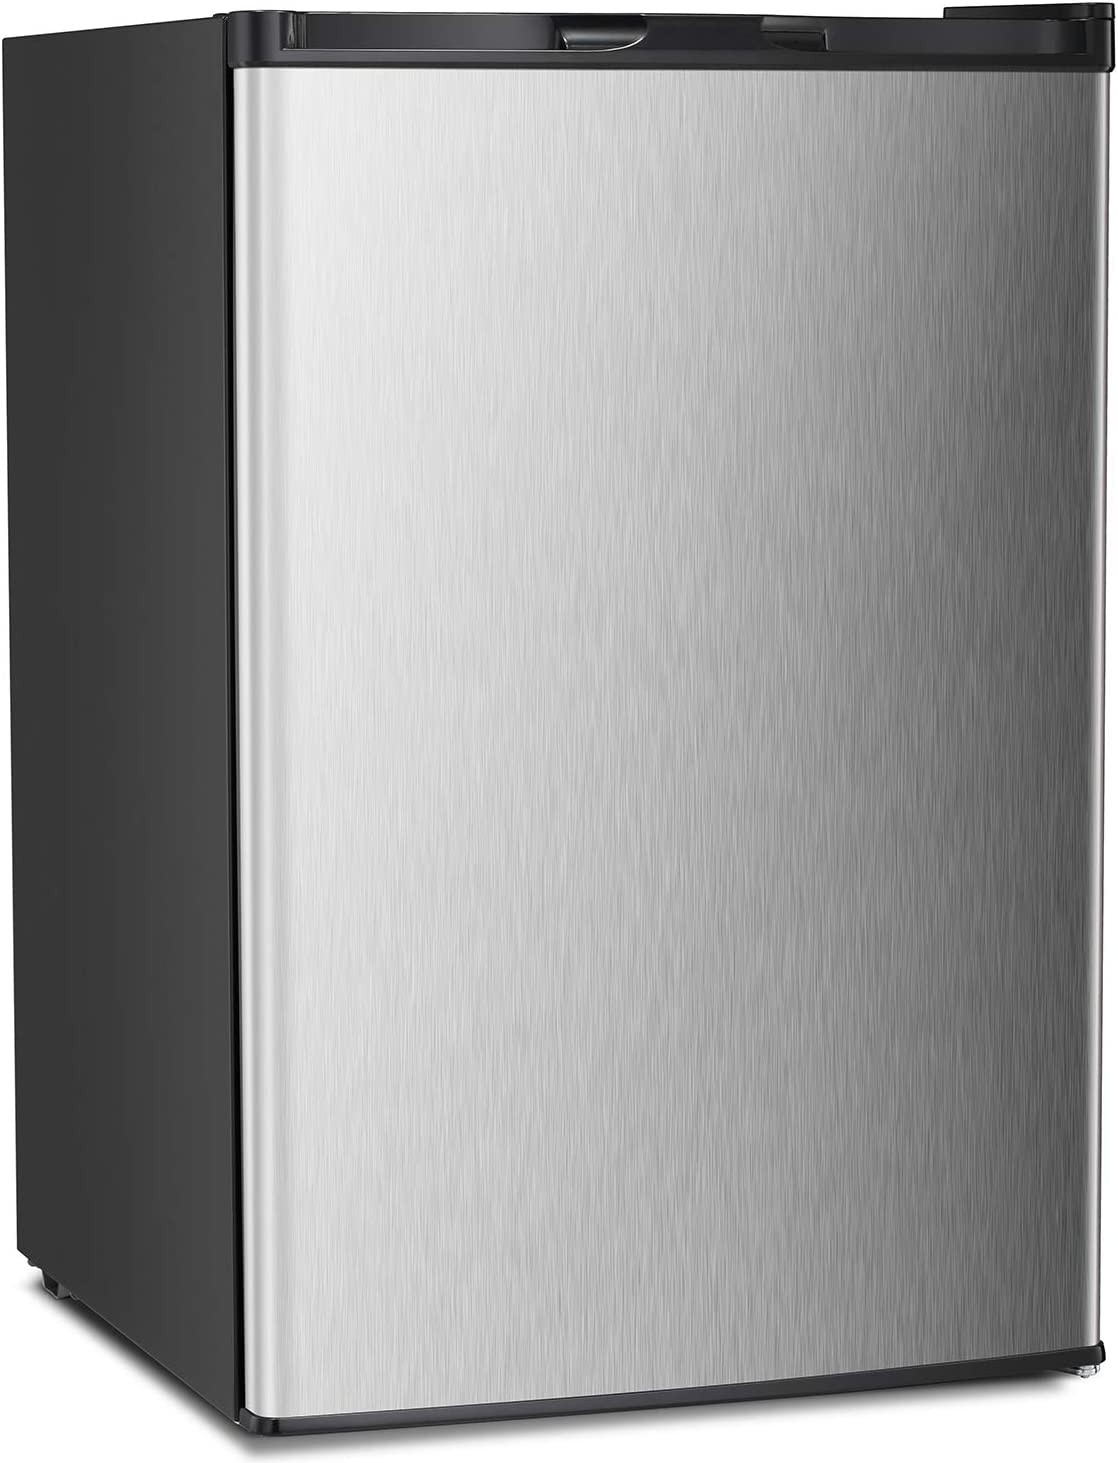 Antarctic Star Compact Chest Upright Freezer Single Door Reversible Stainless Steel Door, Compact Adjustable Removable Shelves for Home Office, 3.0 cu.Silver